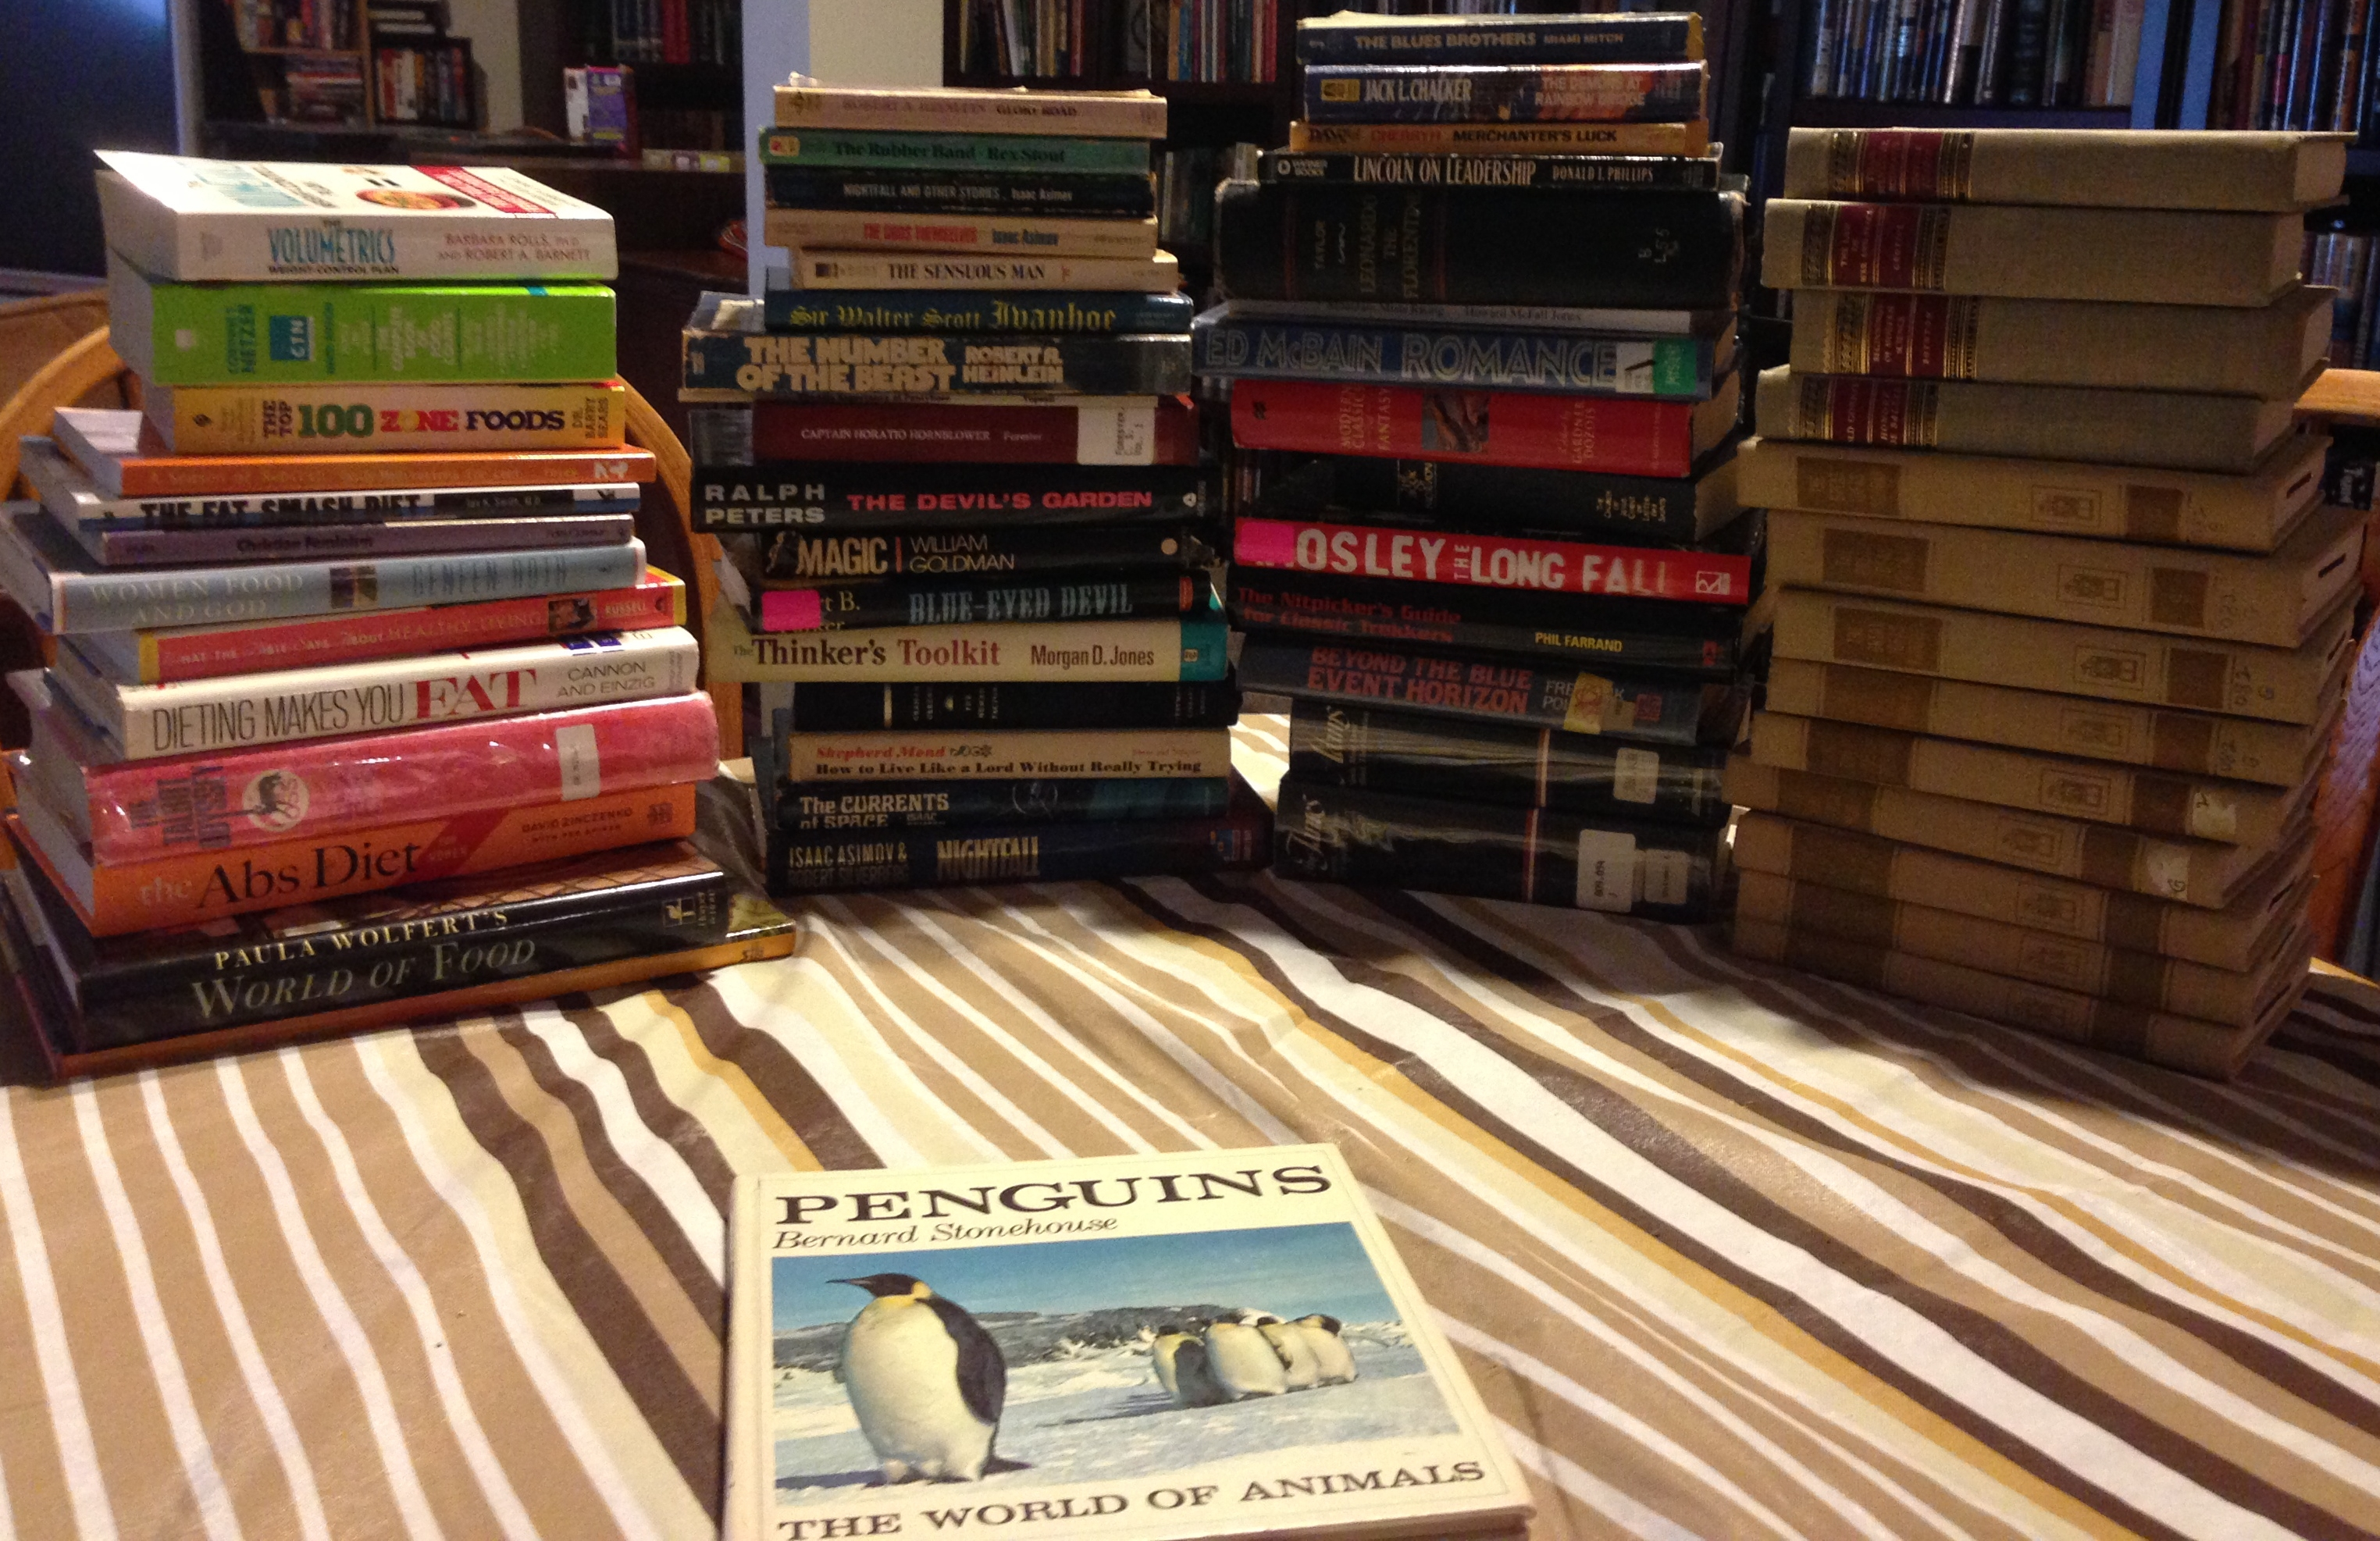 Spring 2014 Friends of the Christian County Library book sale haul